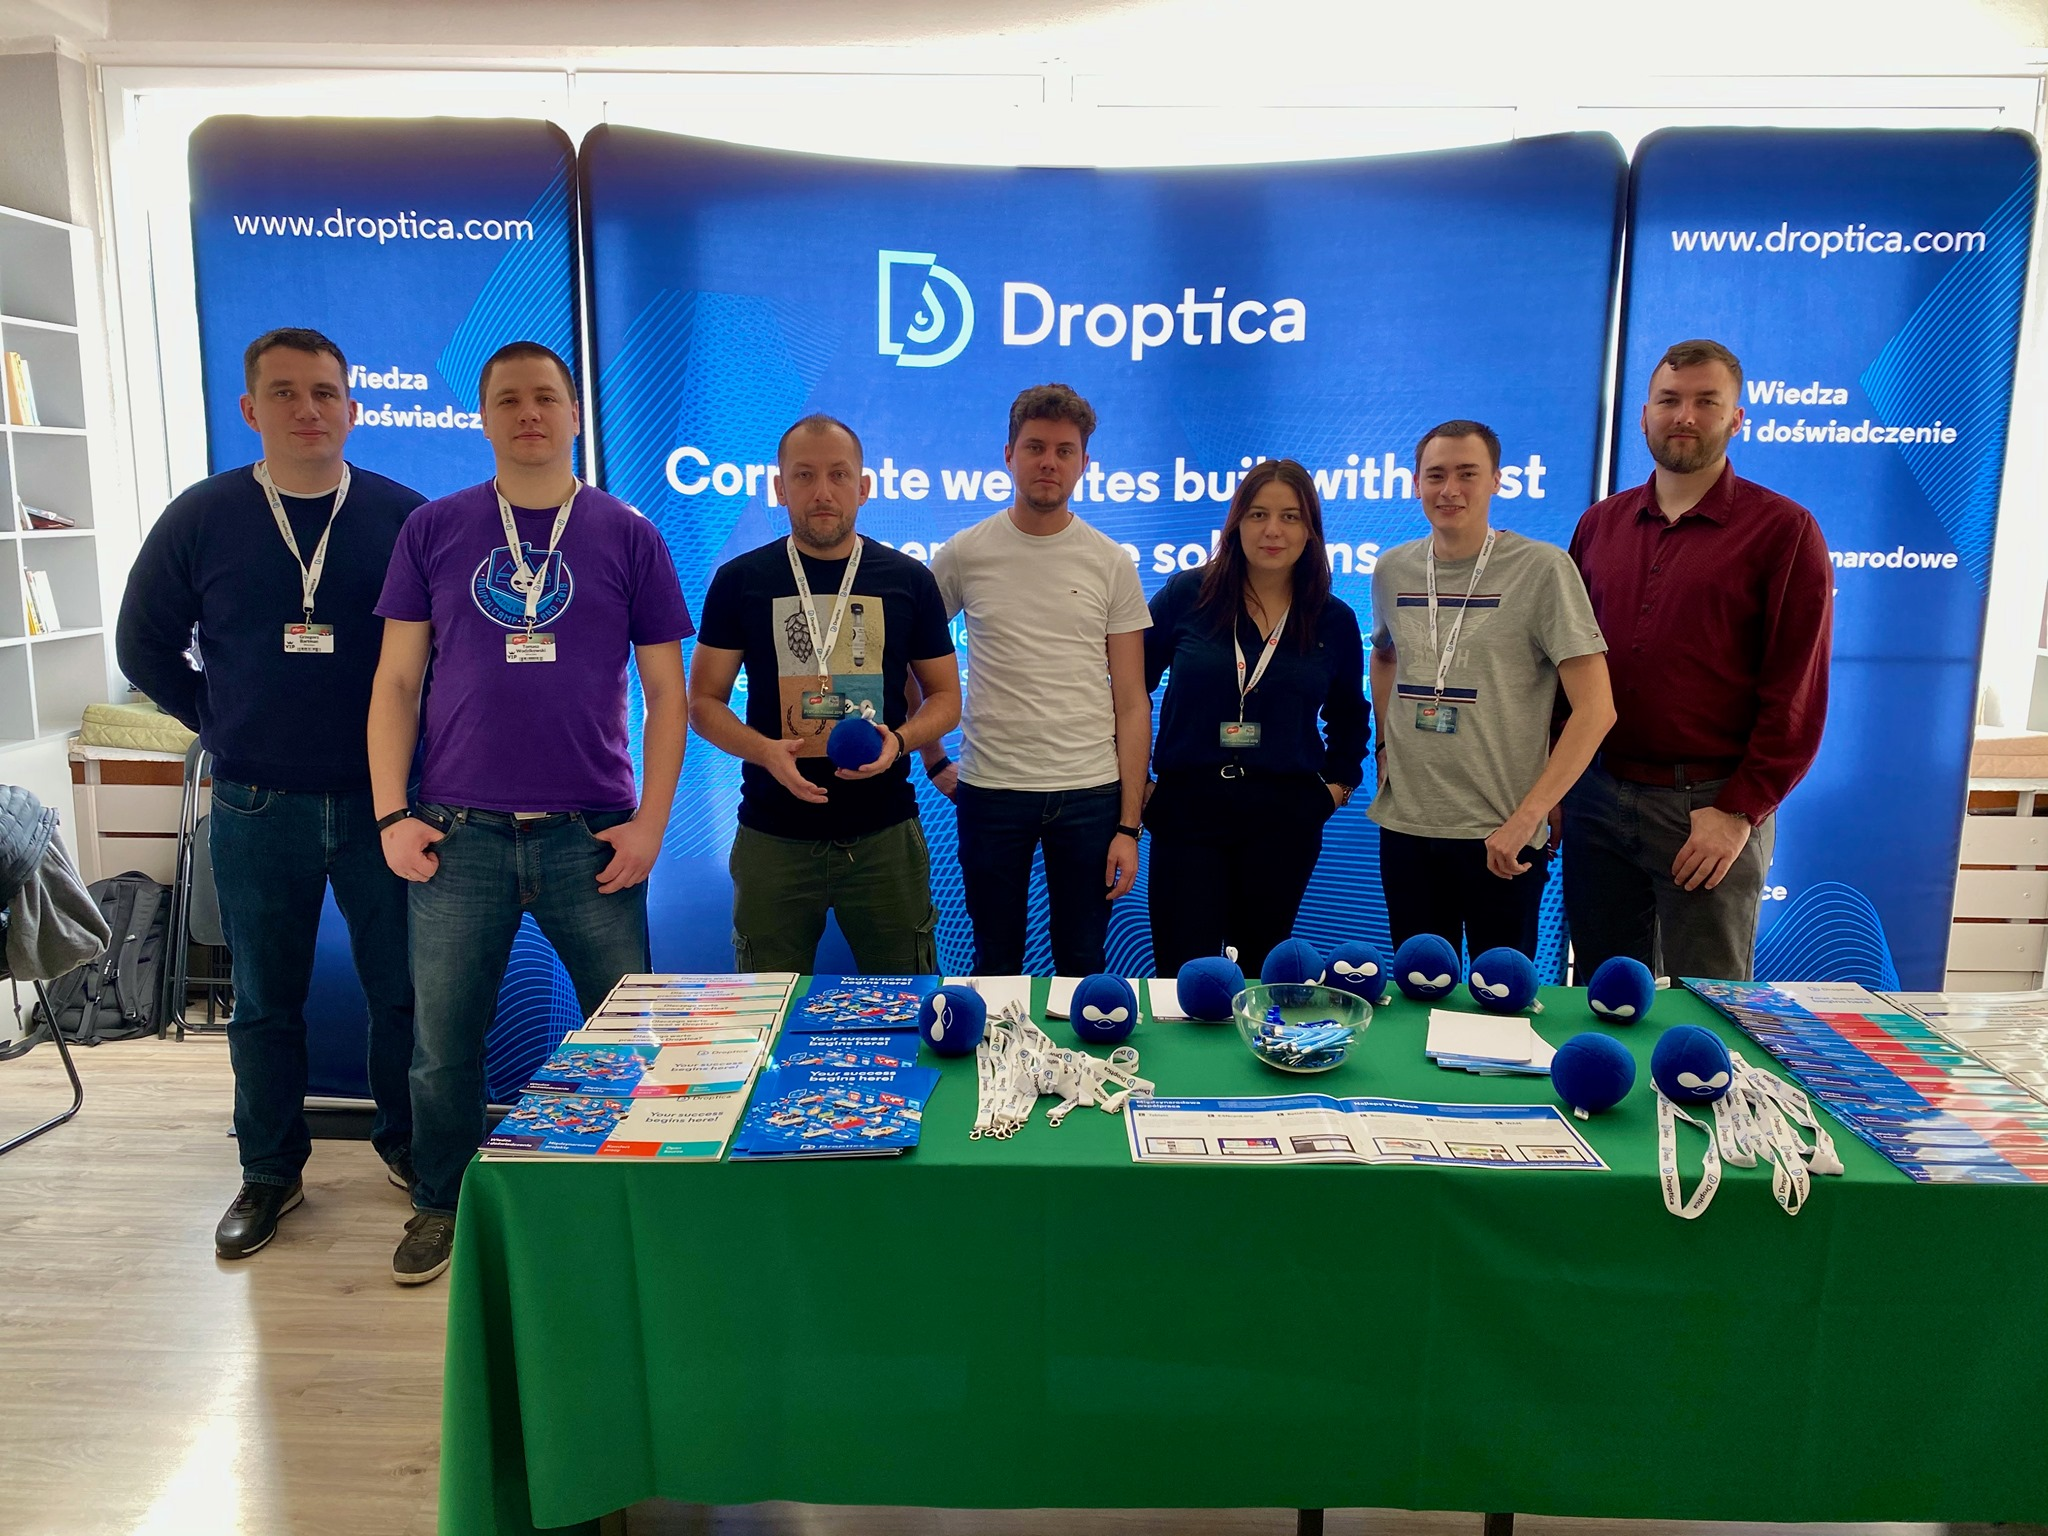 Droptica Team during the event